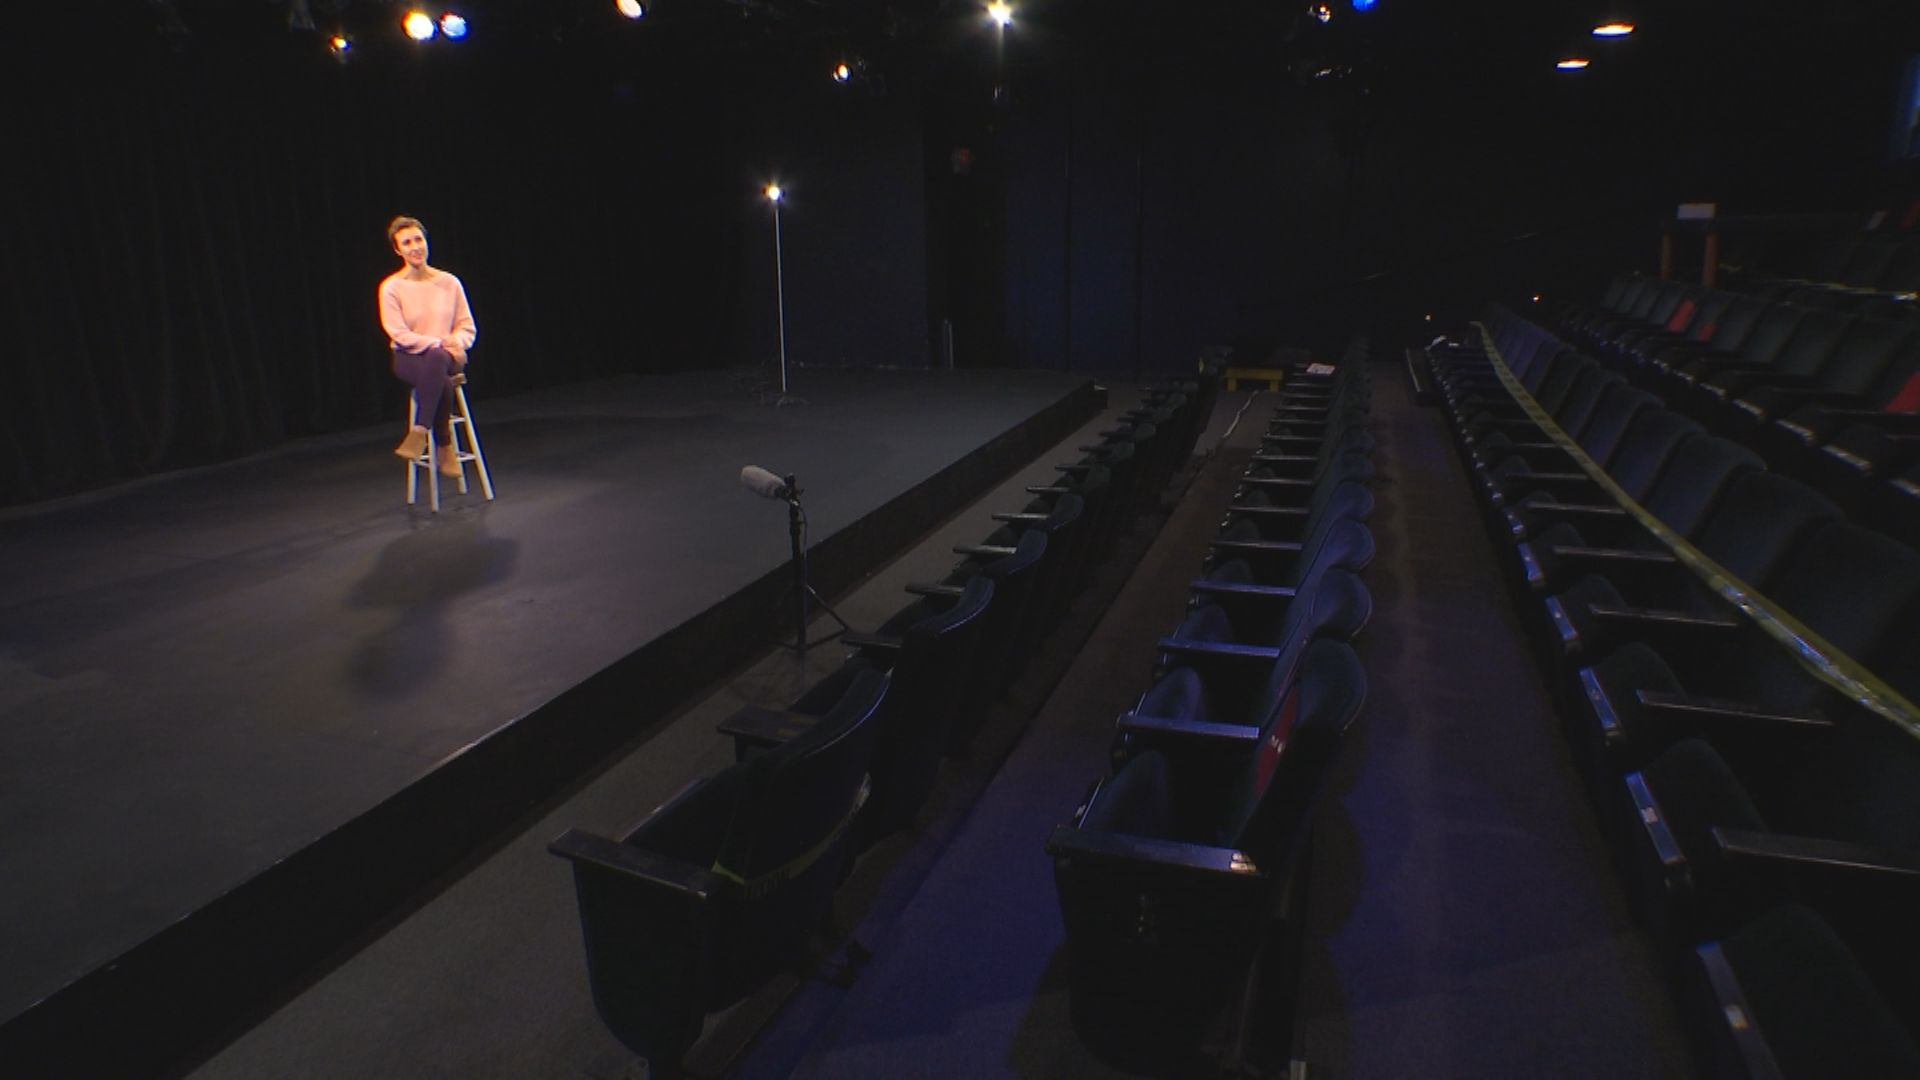 The Show Still Can't Go on for Theaters